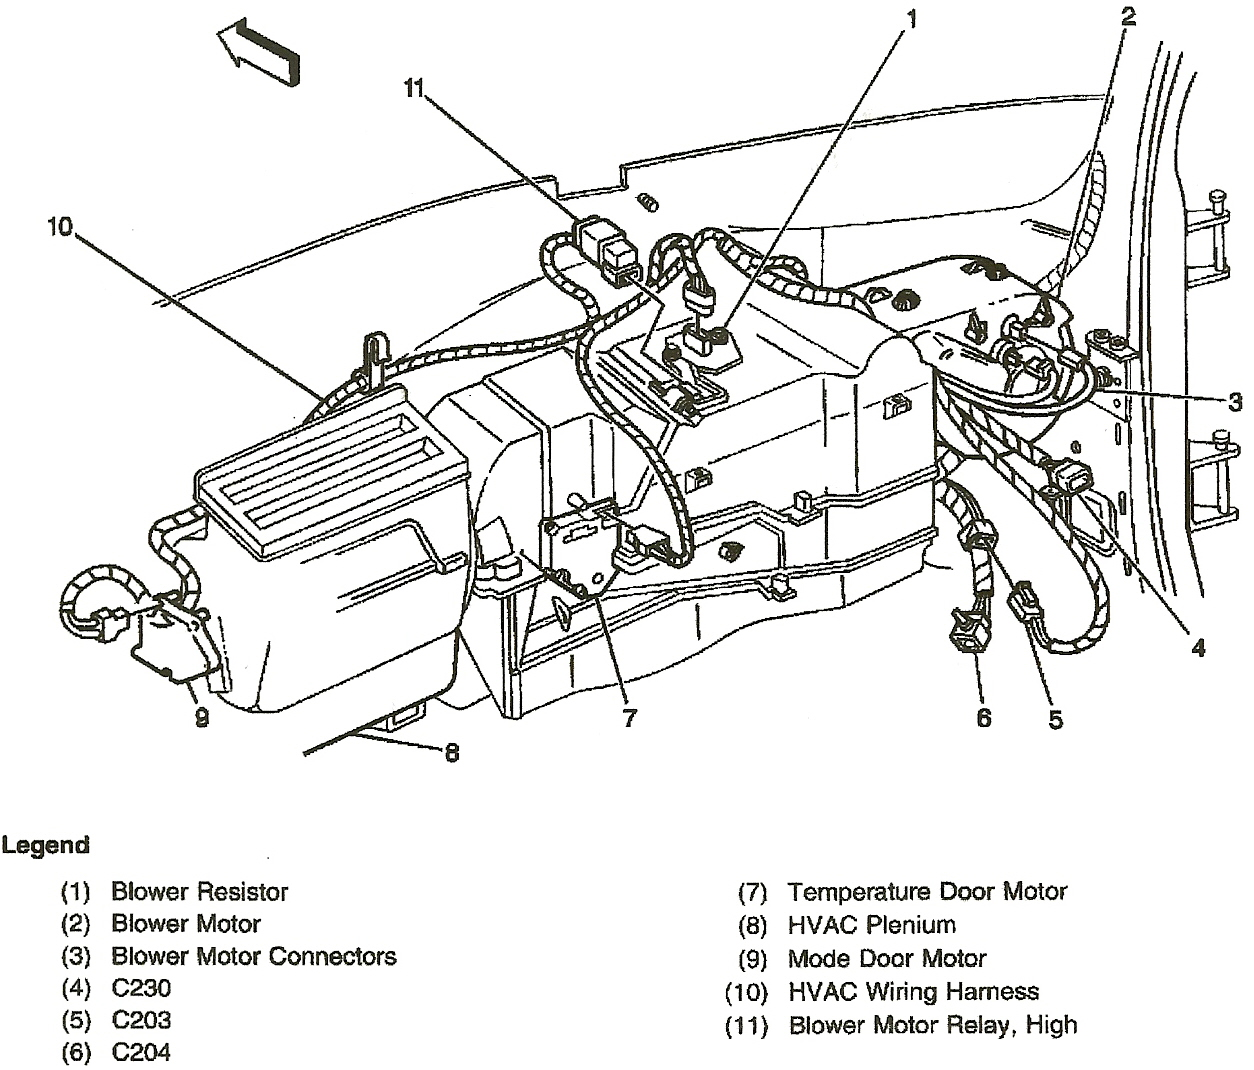 2001 Gmc Sierra Transmission Diagram Radio Wiring Harness For Gm Download Diagrams Chevy Suburban Ac Rh Blaknwyt Co 1500 Parts